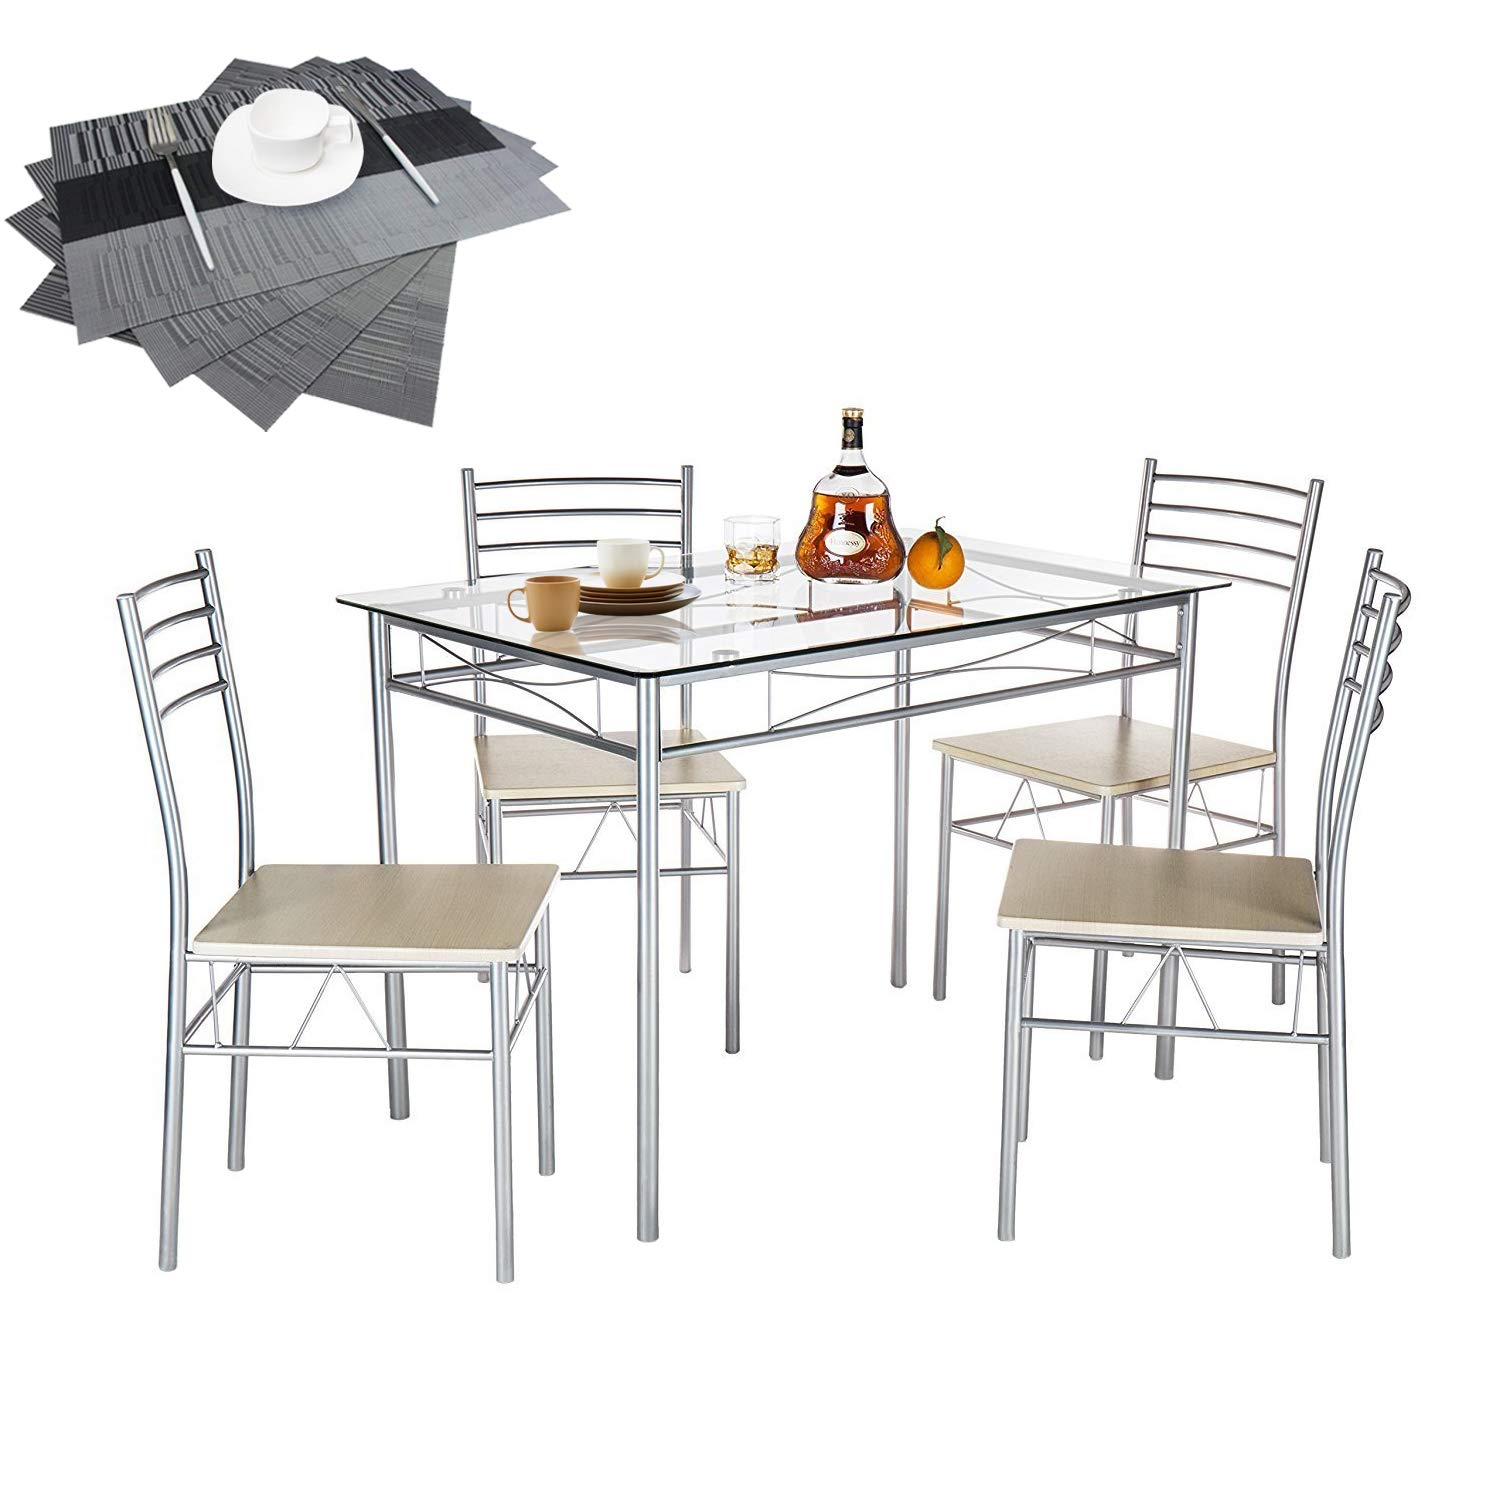 VECELO Dining Table with 4 Chairs [4 Placemats Included-] Silver by VECELO